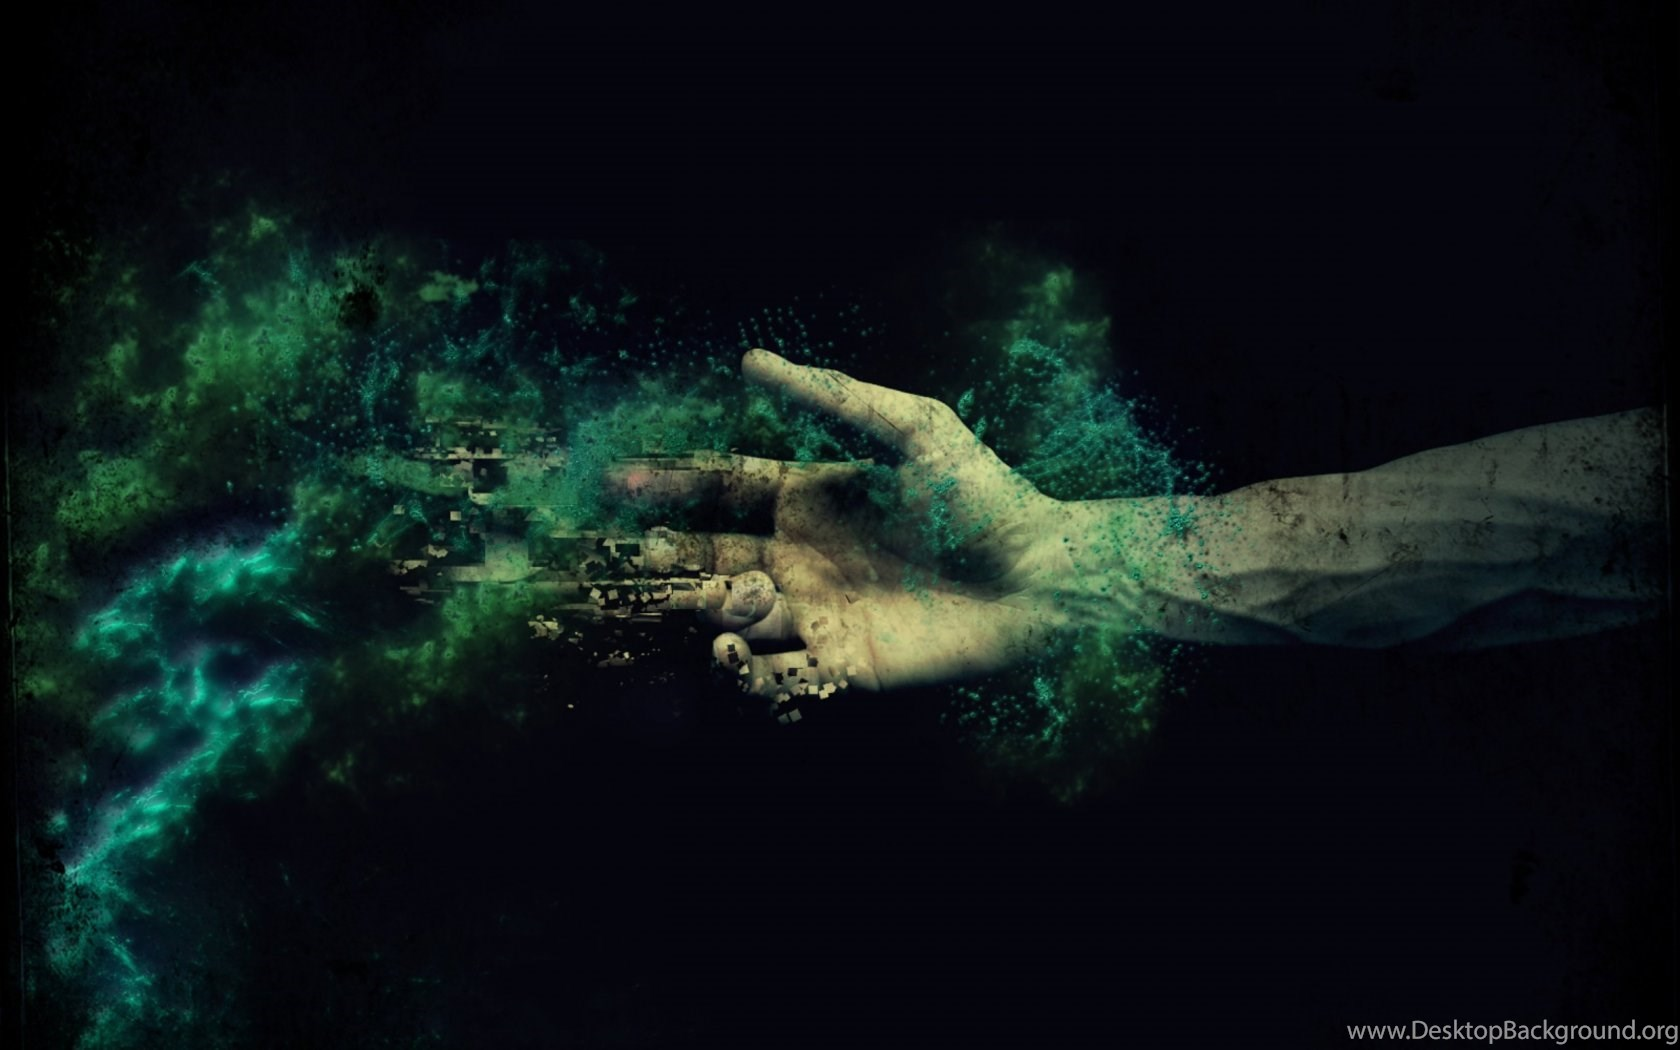 Impossible Helping Hand Hd Wallpapers Widescreen 1680x1050 Desktop